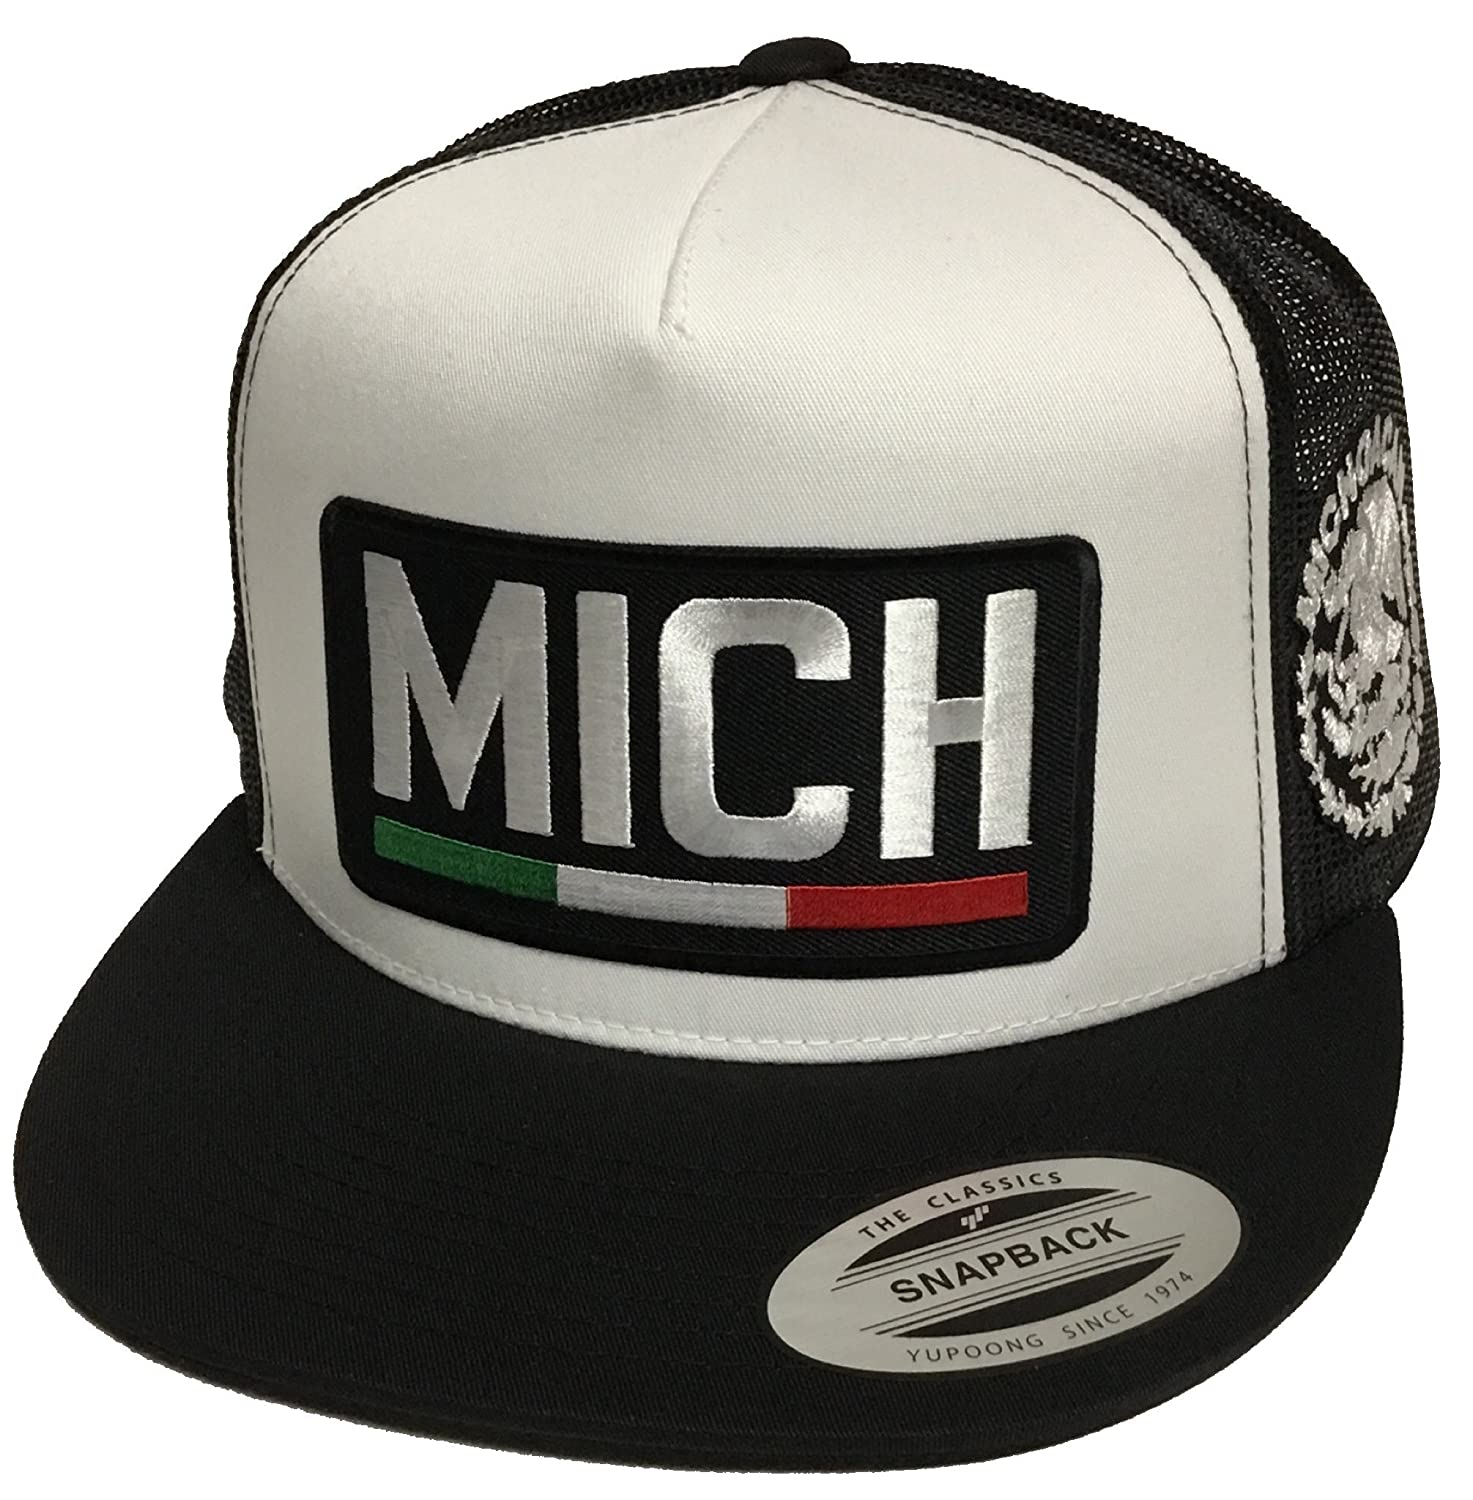 66e7e293605 Michoacan 2 Logos Mexico Logo Federal Hat White Black Mesh Snapback at  Amazon Men s Clothing store